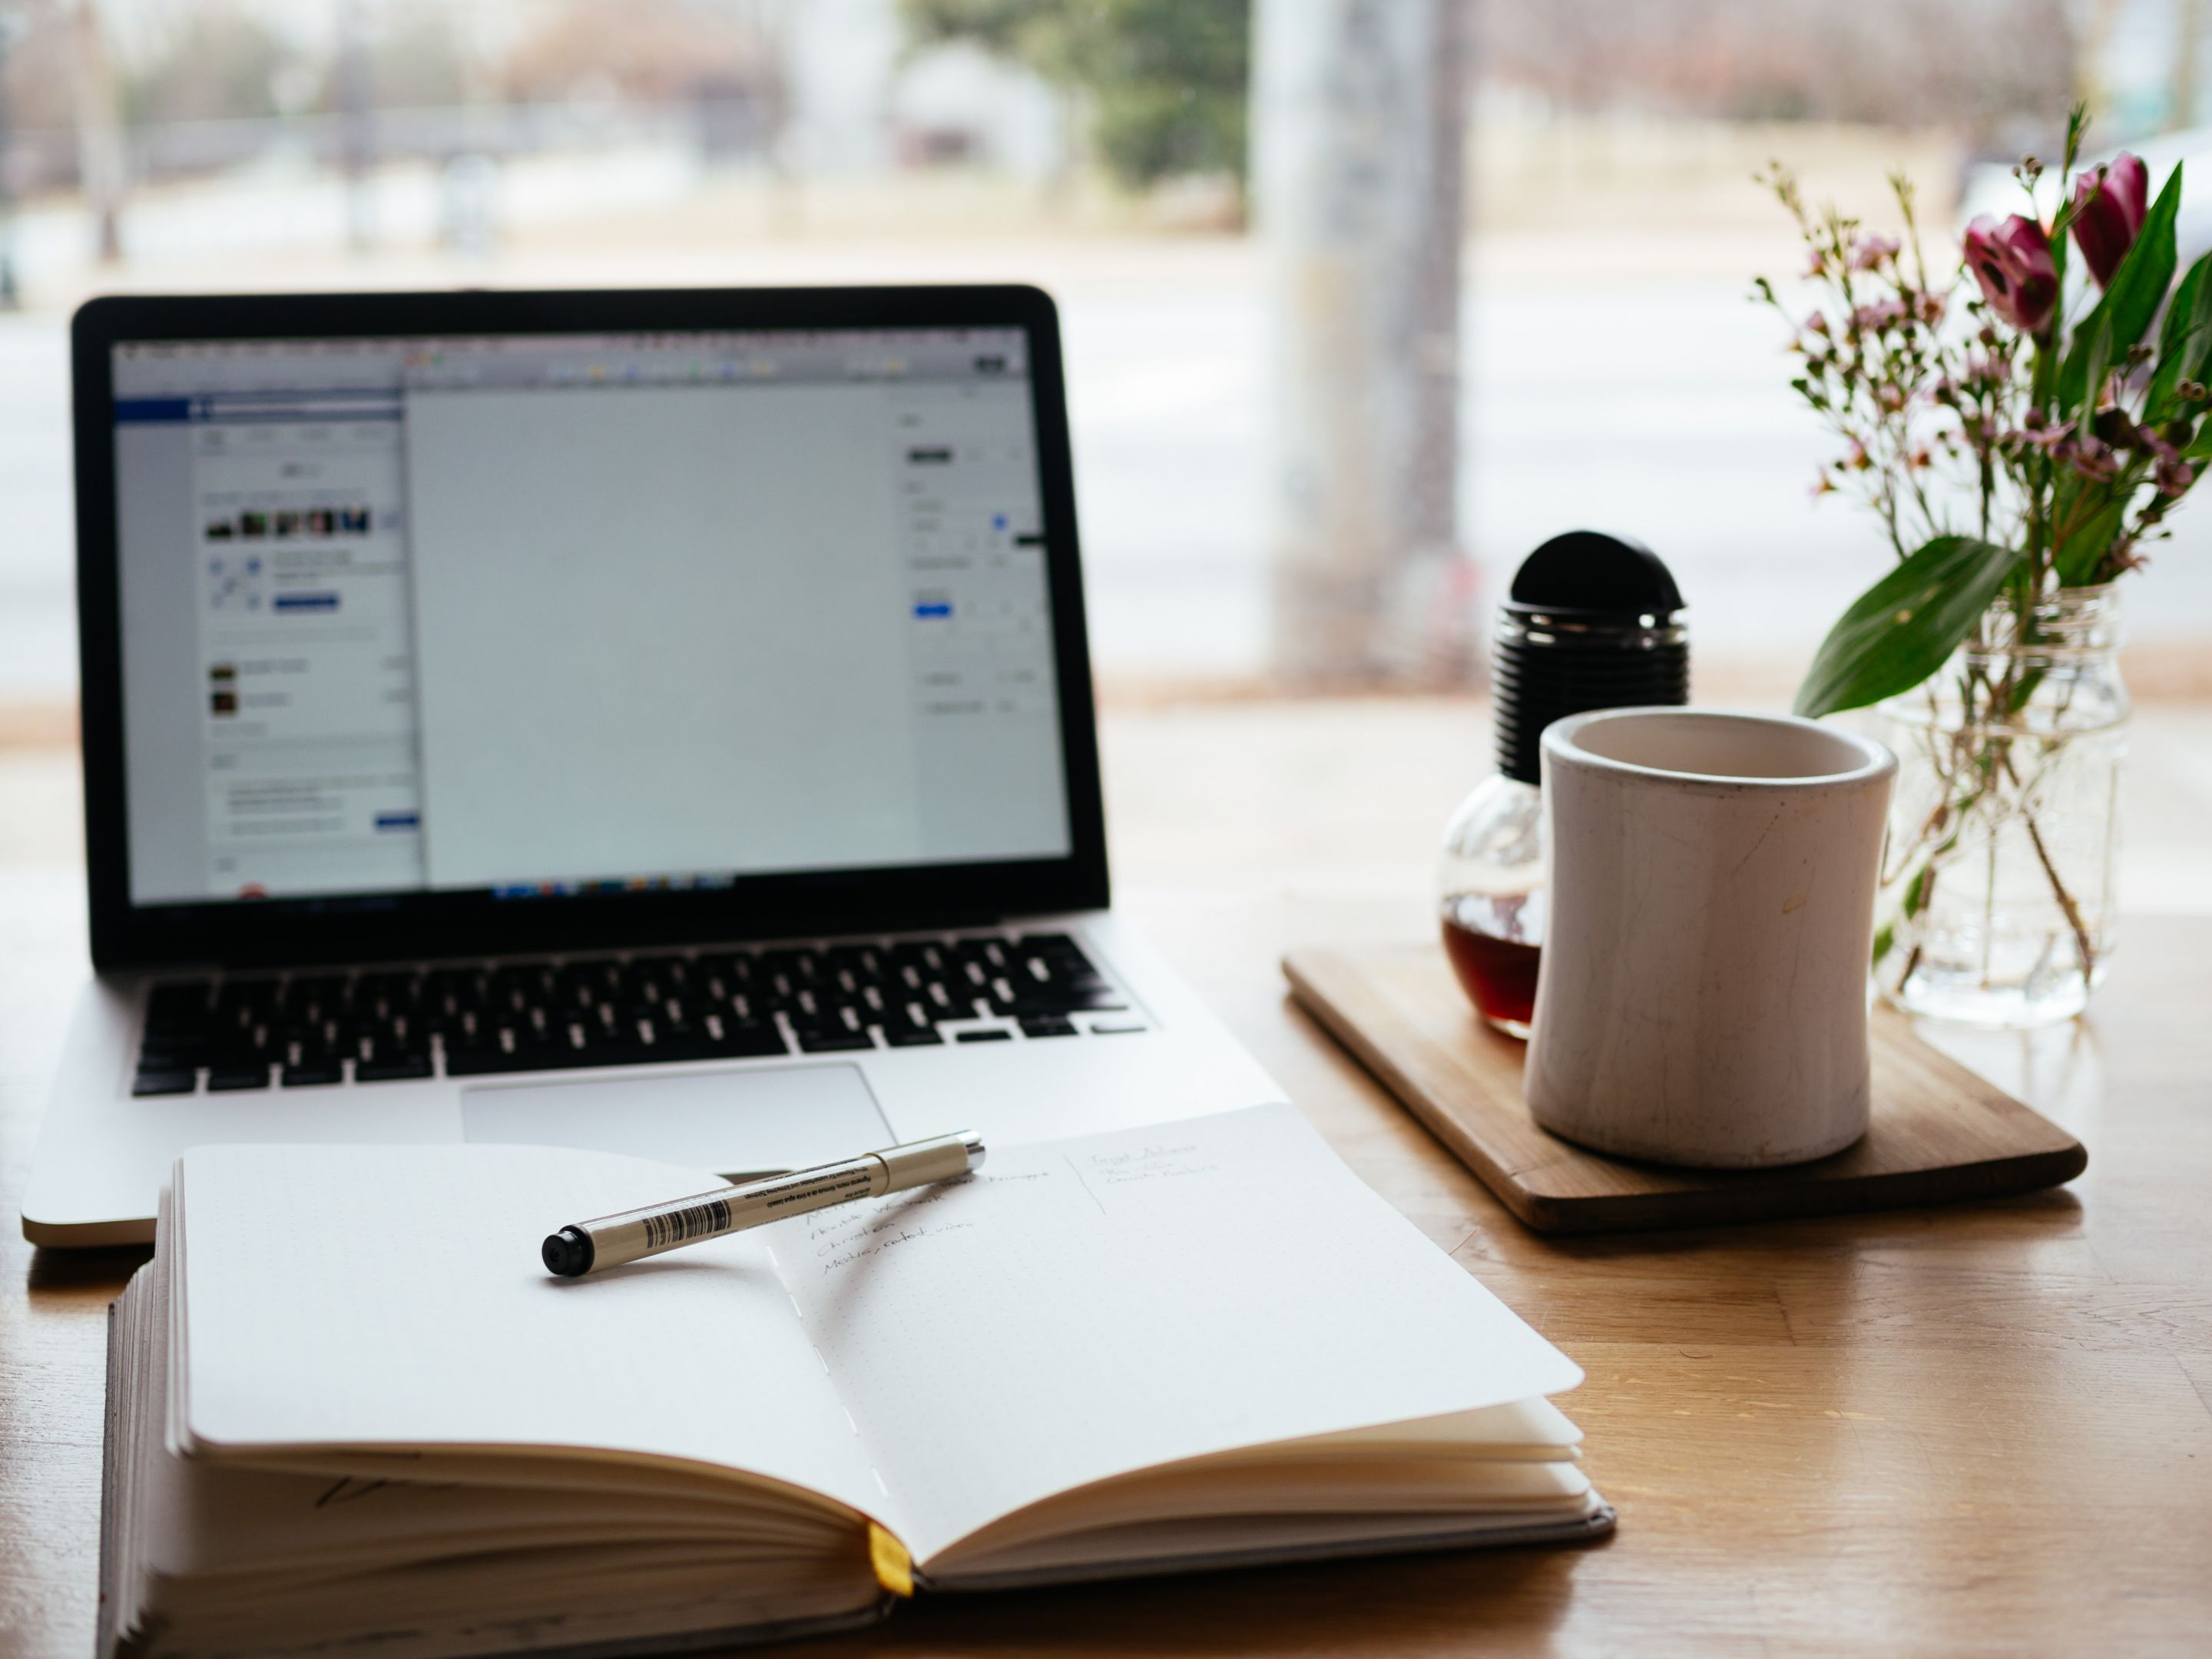 Bachelor of Science in English and Creative Writing Online